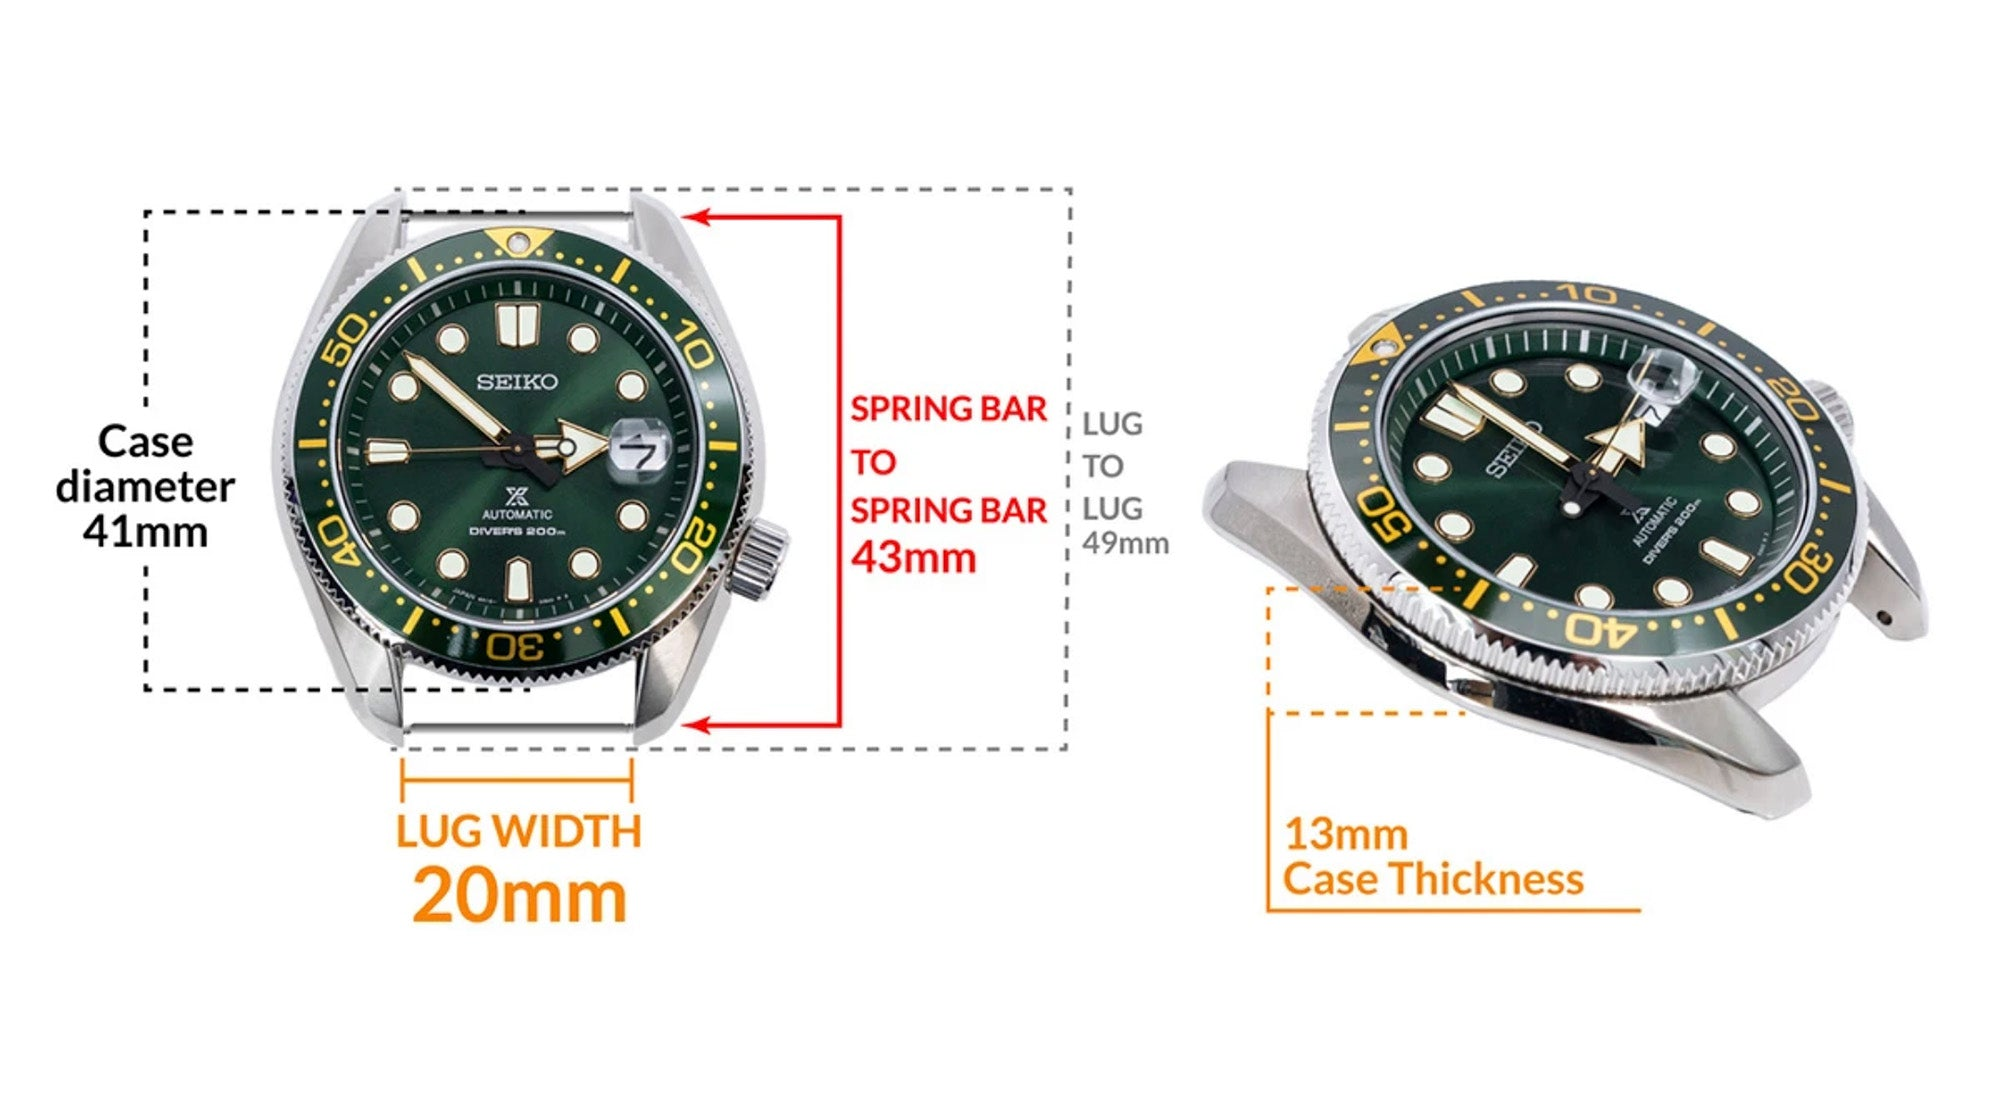 Seiko MM200 Green SPB109J- Details Seiko watch size, Lug width and case dimensions